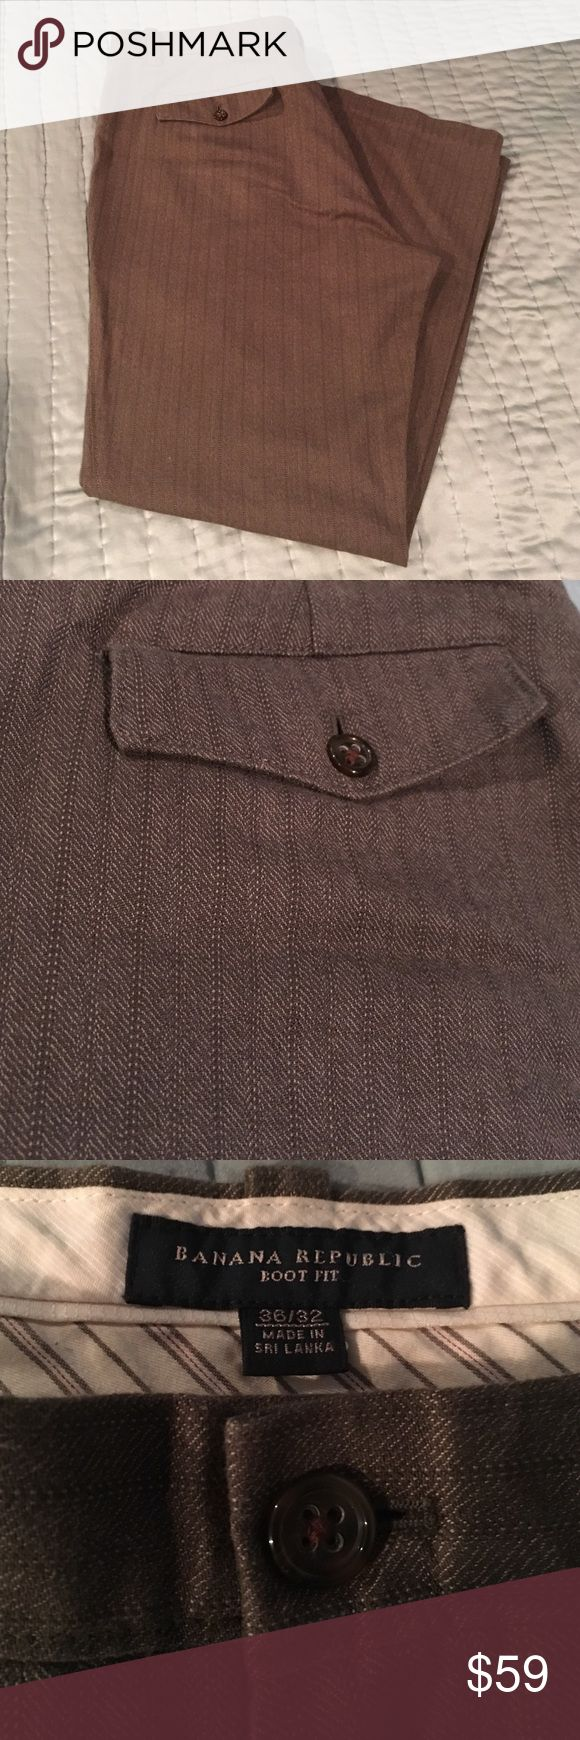 Banana Republic slacks Only worn once! Medium brown slacks with subtle pin stripe. Boot cut fit. Unaltered. Pant hem is in perfect condition. No marks or tears. Offers welcomed Banana Republic Pants Dress